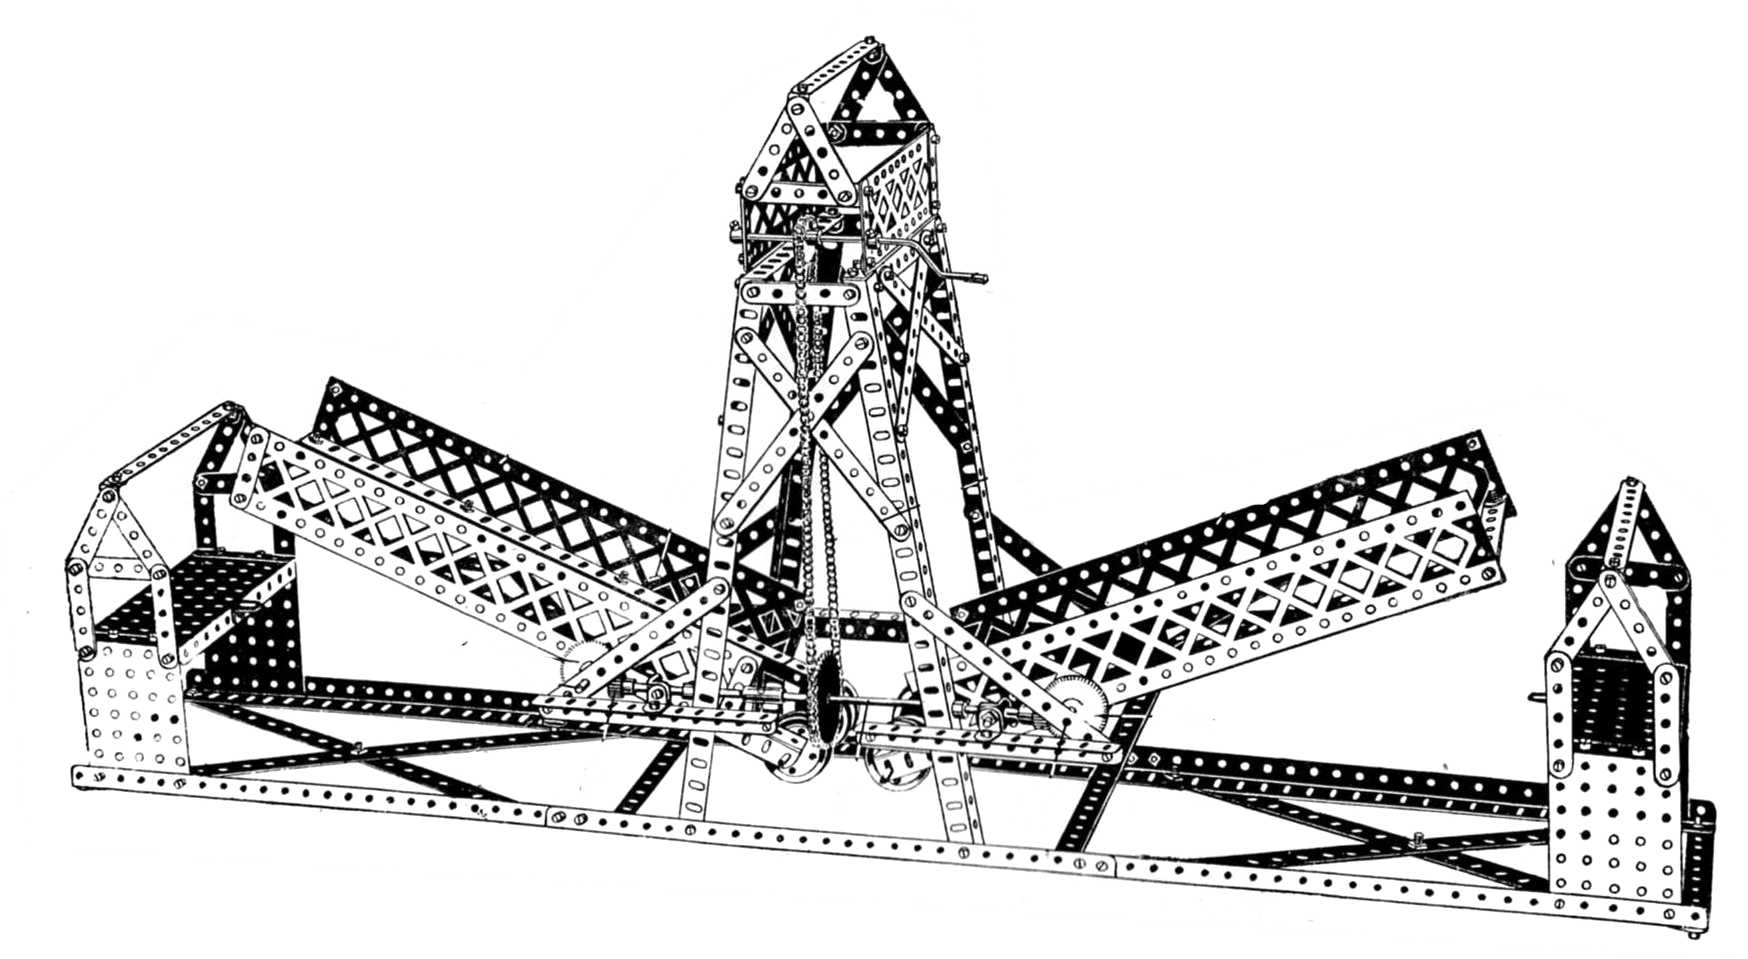 analysis of meccano manuals